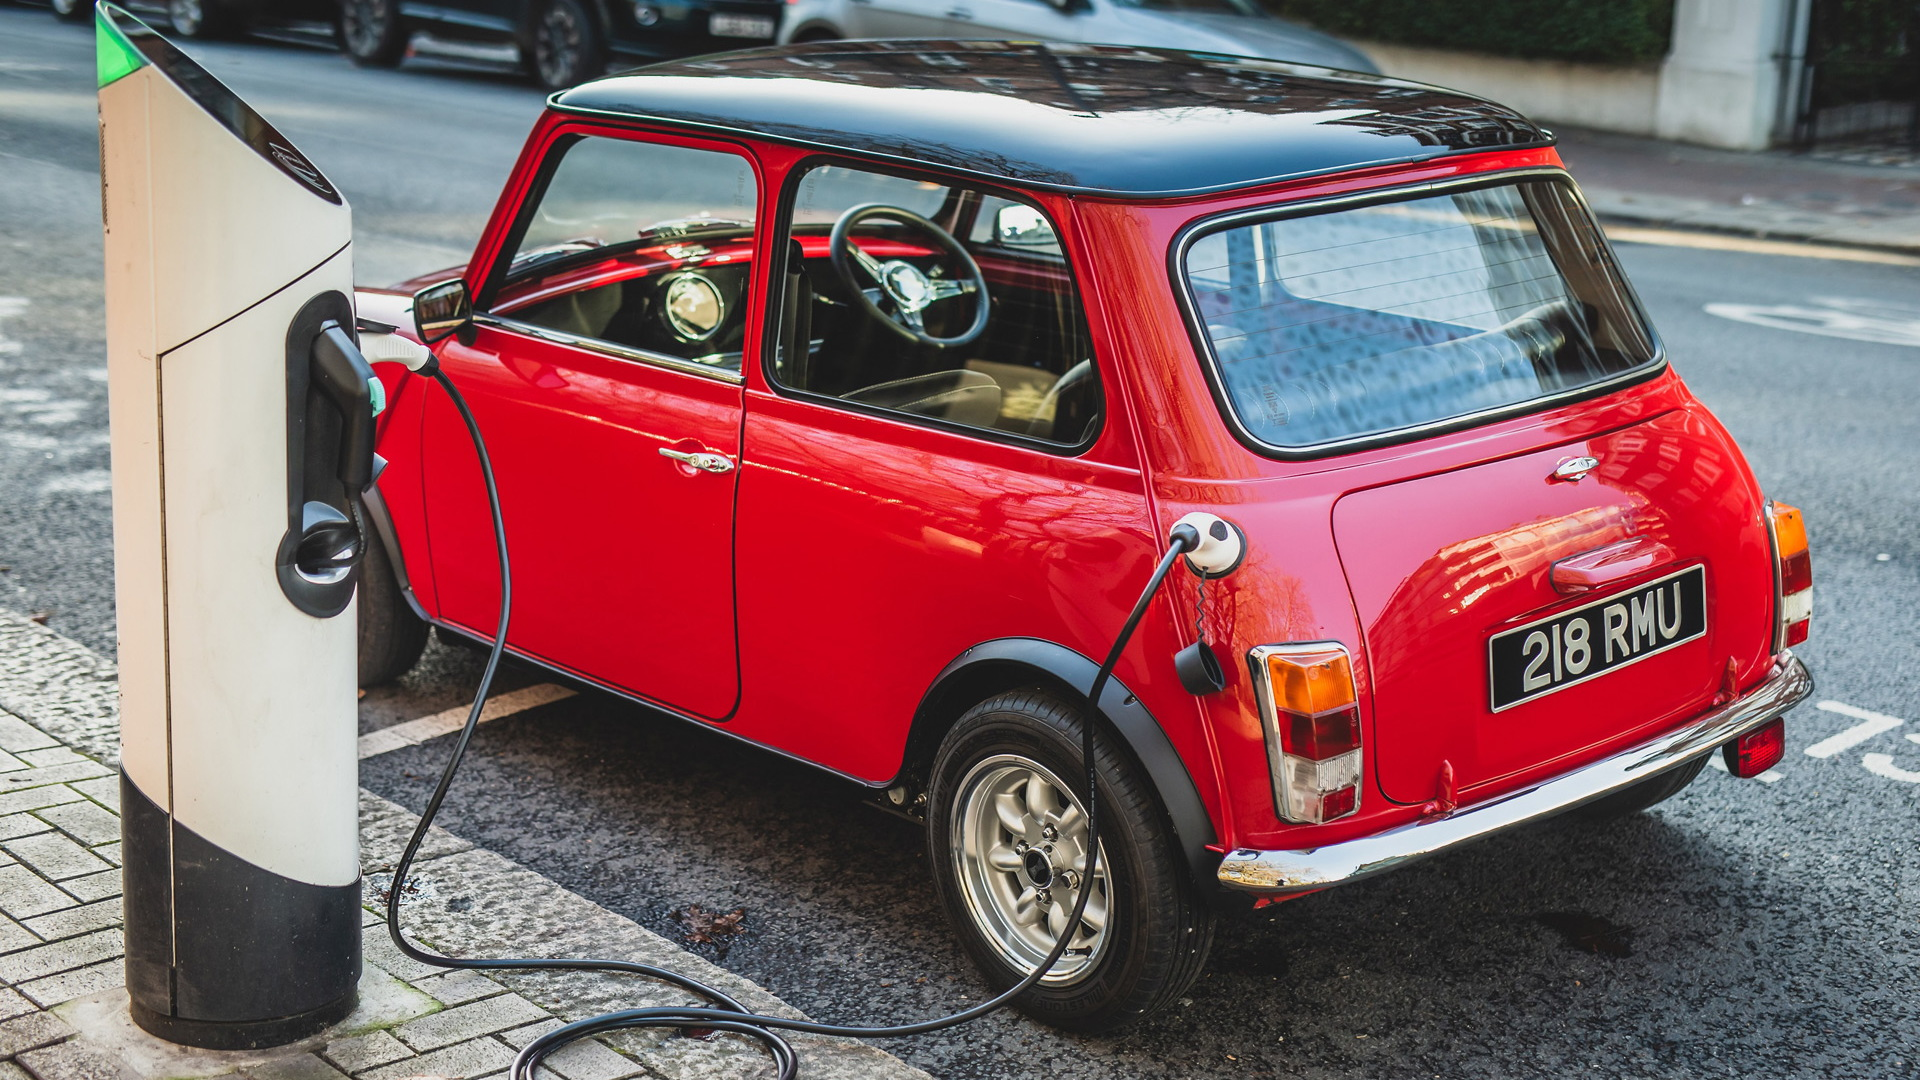 Kit Can Help Convert Any Classic Mini To All Electric But It S Not Cheap